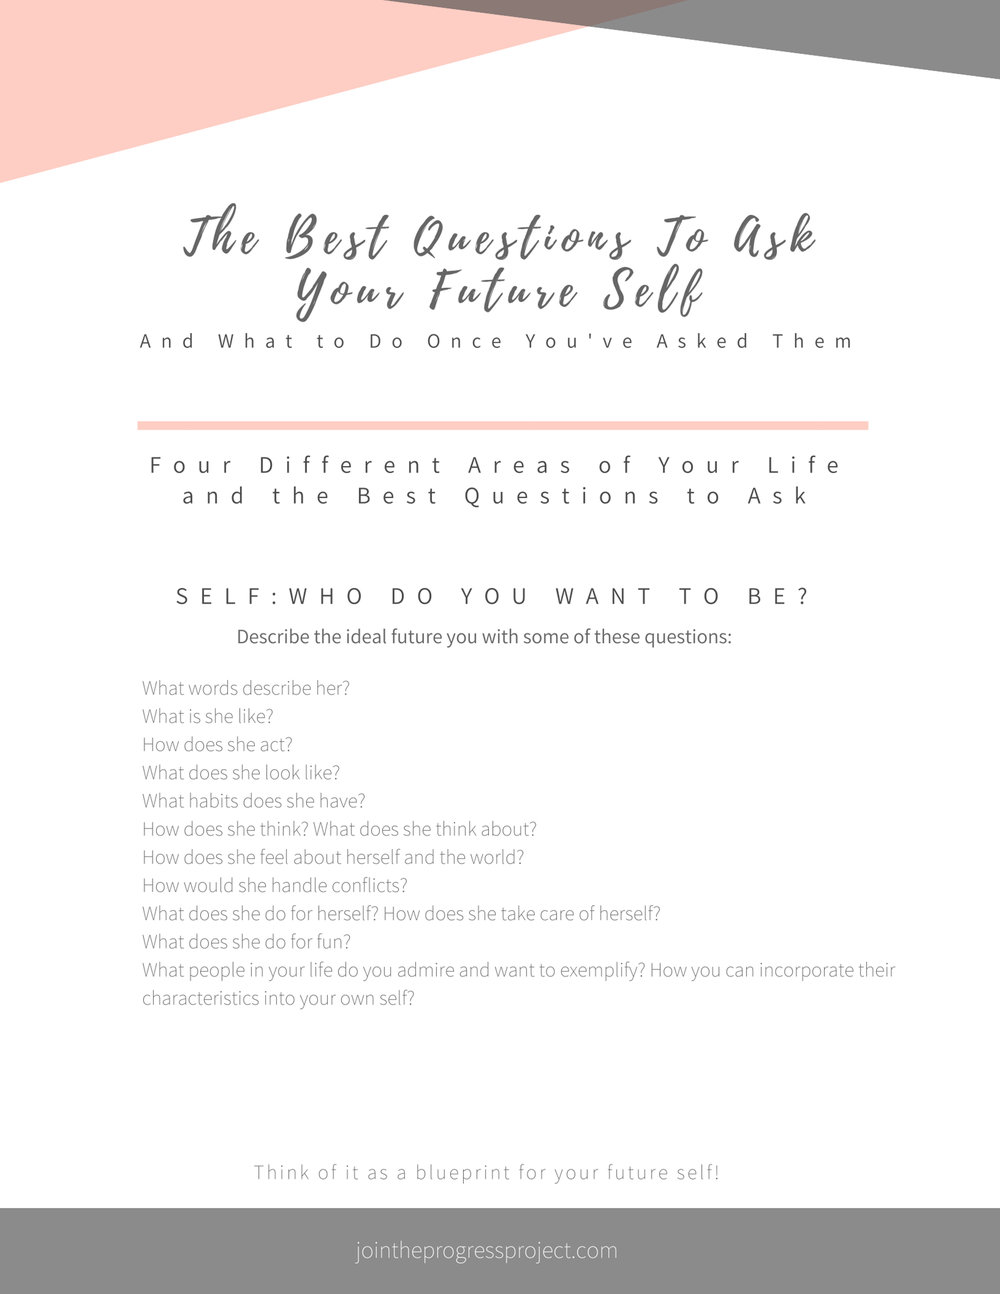 The Best Questions to Ask Your Future Self and What to Do Once You've Asked Them